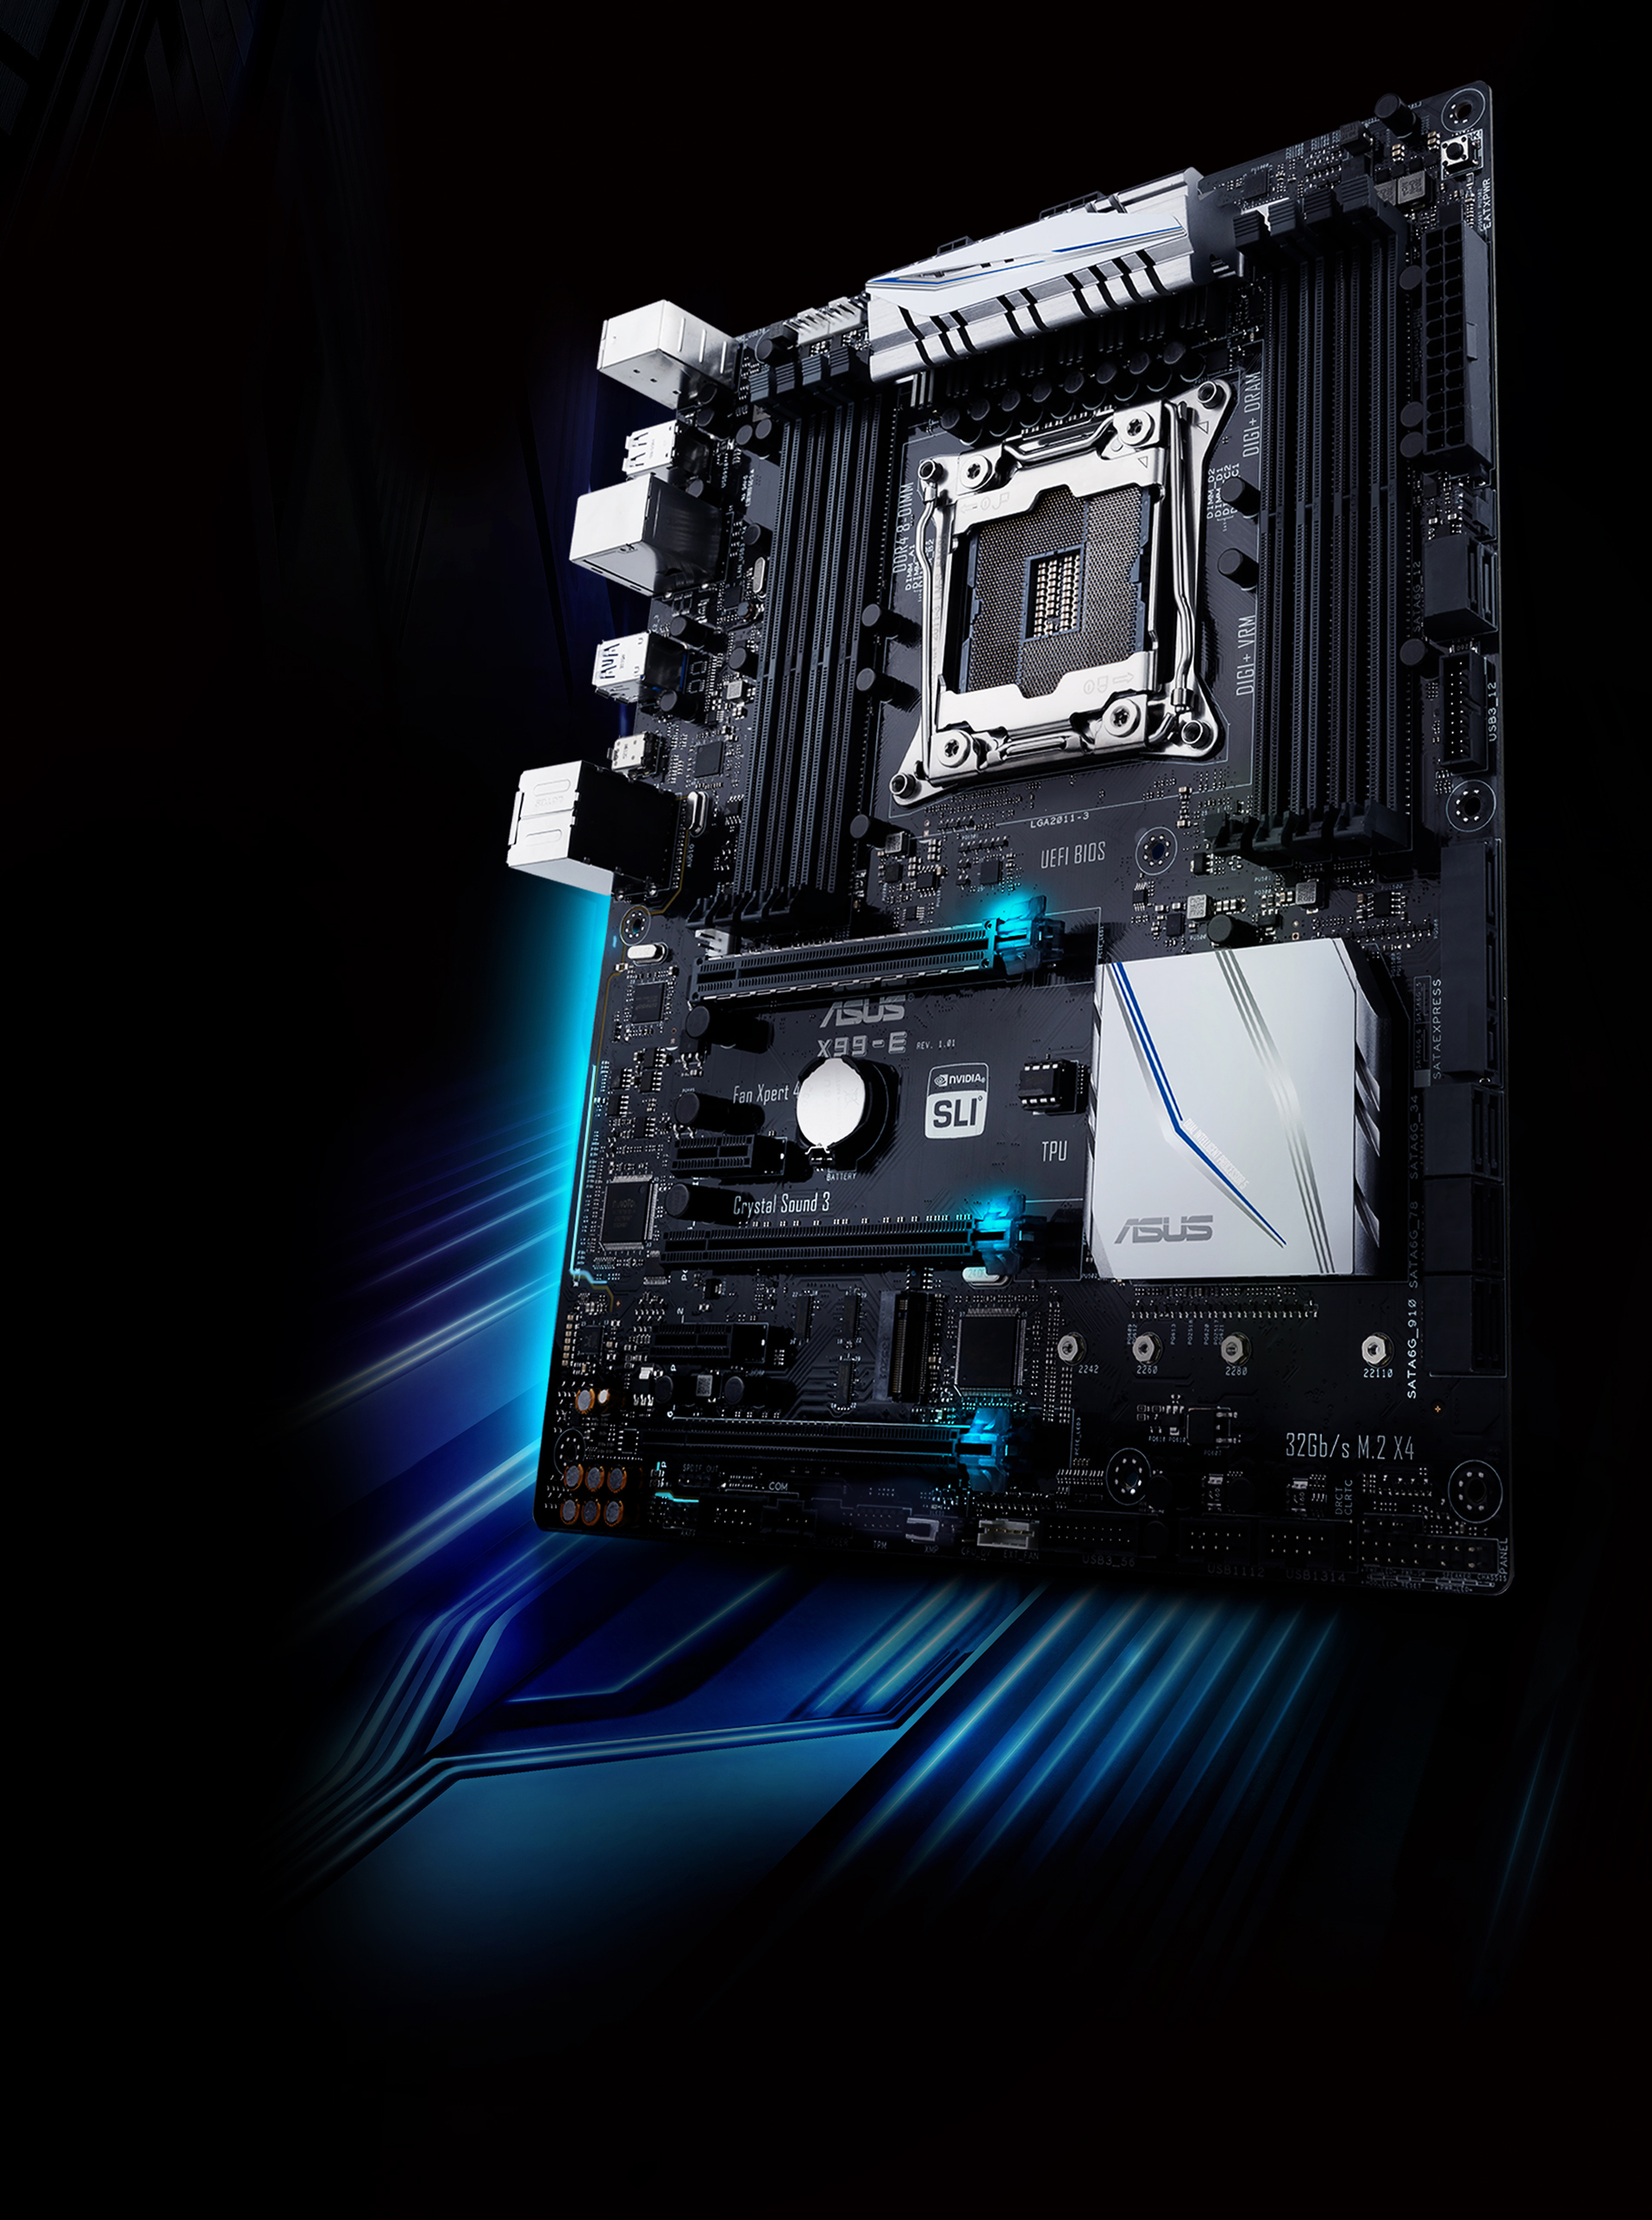 X99 E Motherboards Asus Usa Computer Diagram With The Following Parts Labeled Cpu Monitor Apps Overclock